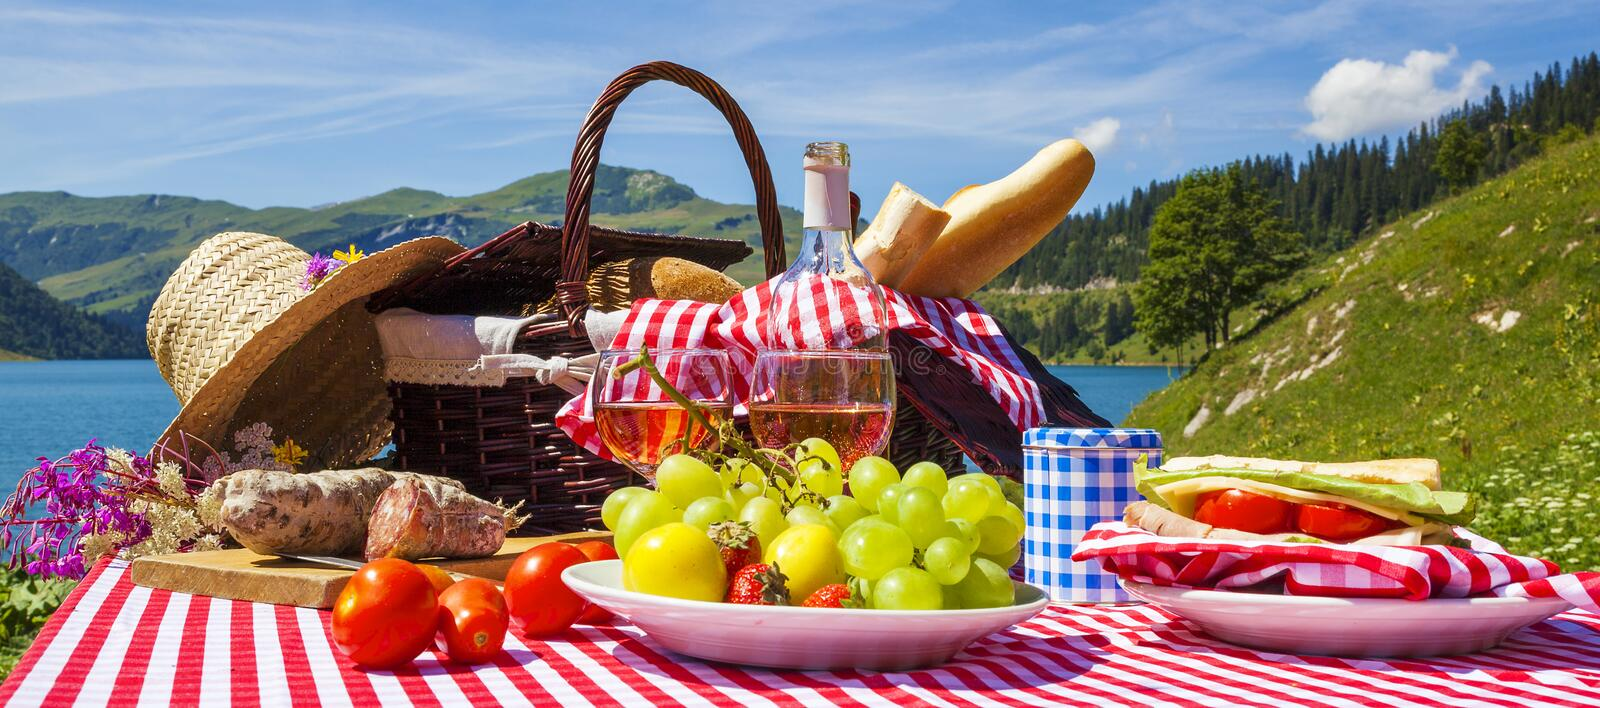 Picnic in french alpine mountains with lake royalty free stock photos